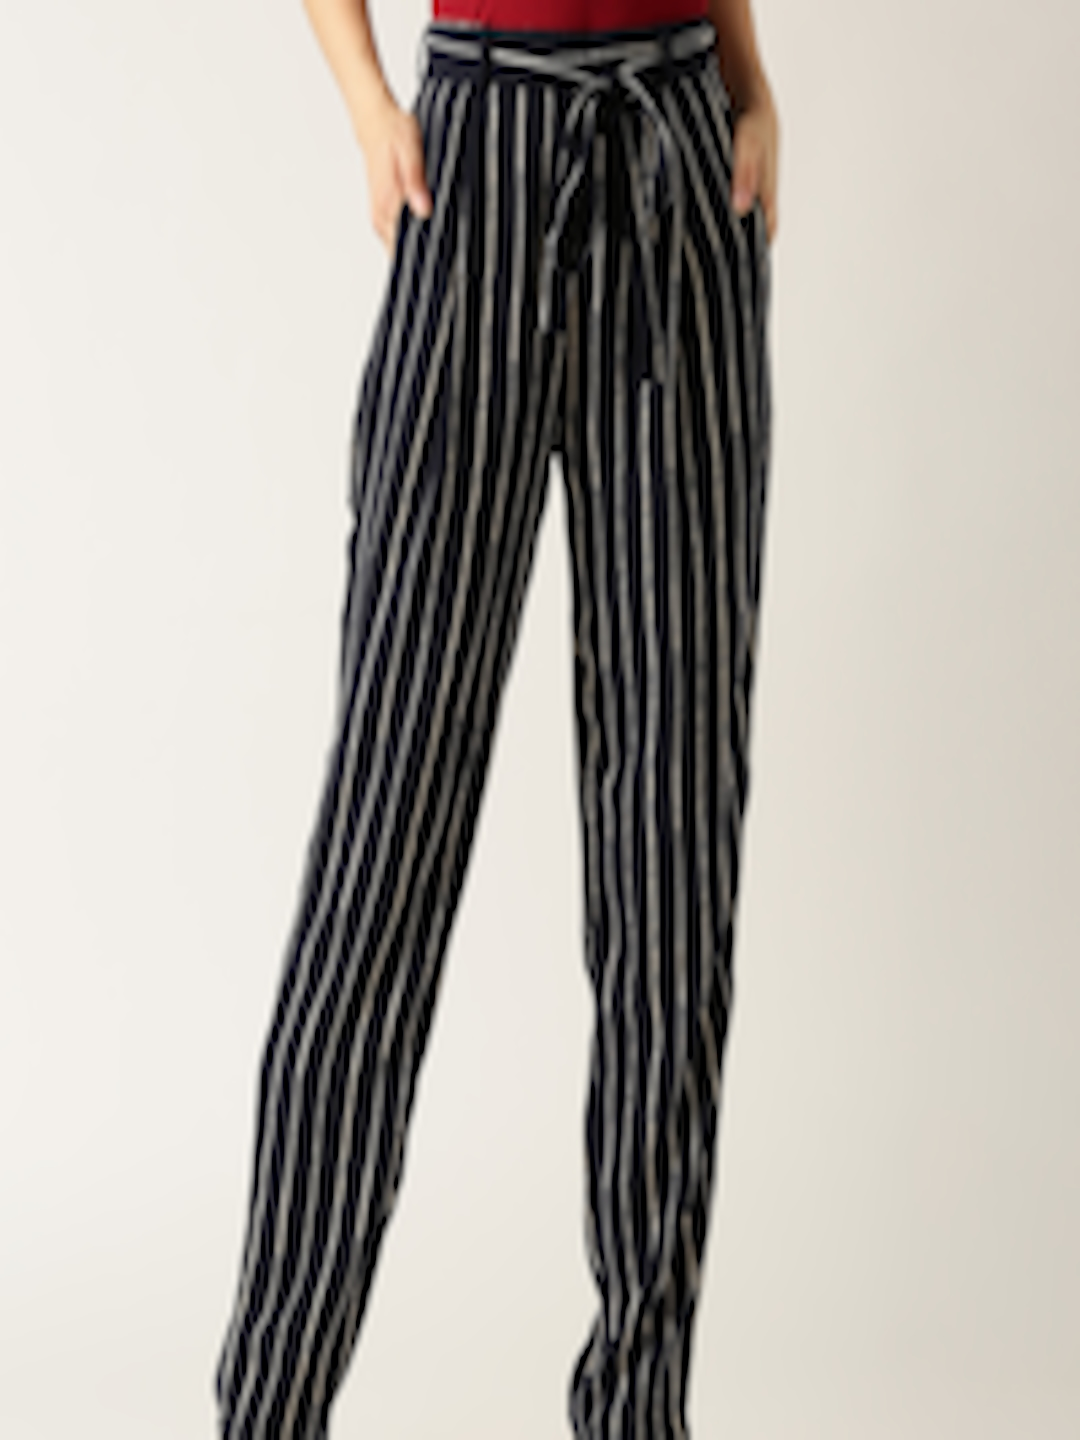 c85b8a7e283c Buy Marie Claire Women Navy   White Original Fit Striped Peg Trousers -  Trousers for Women 1968349